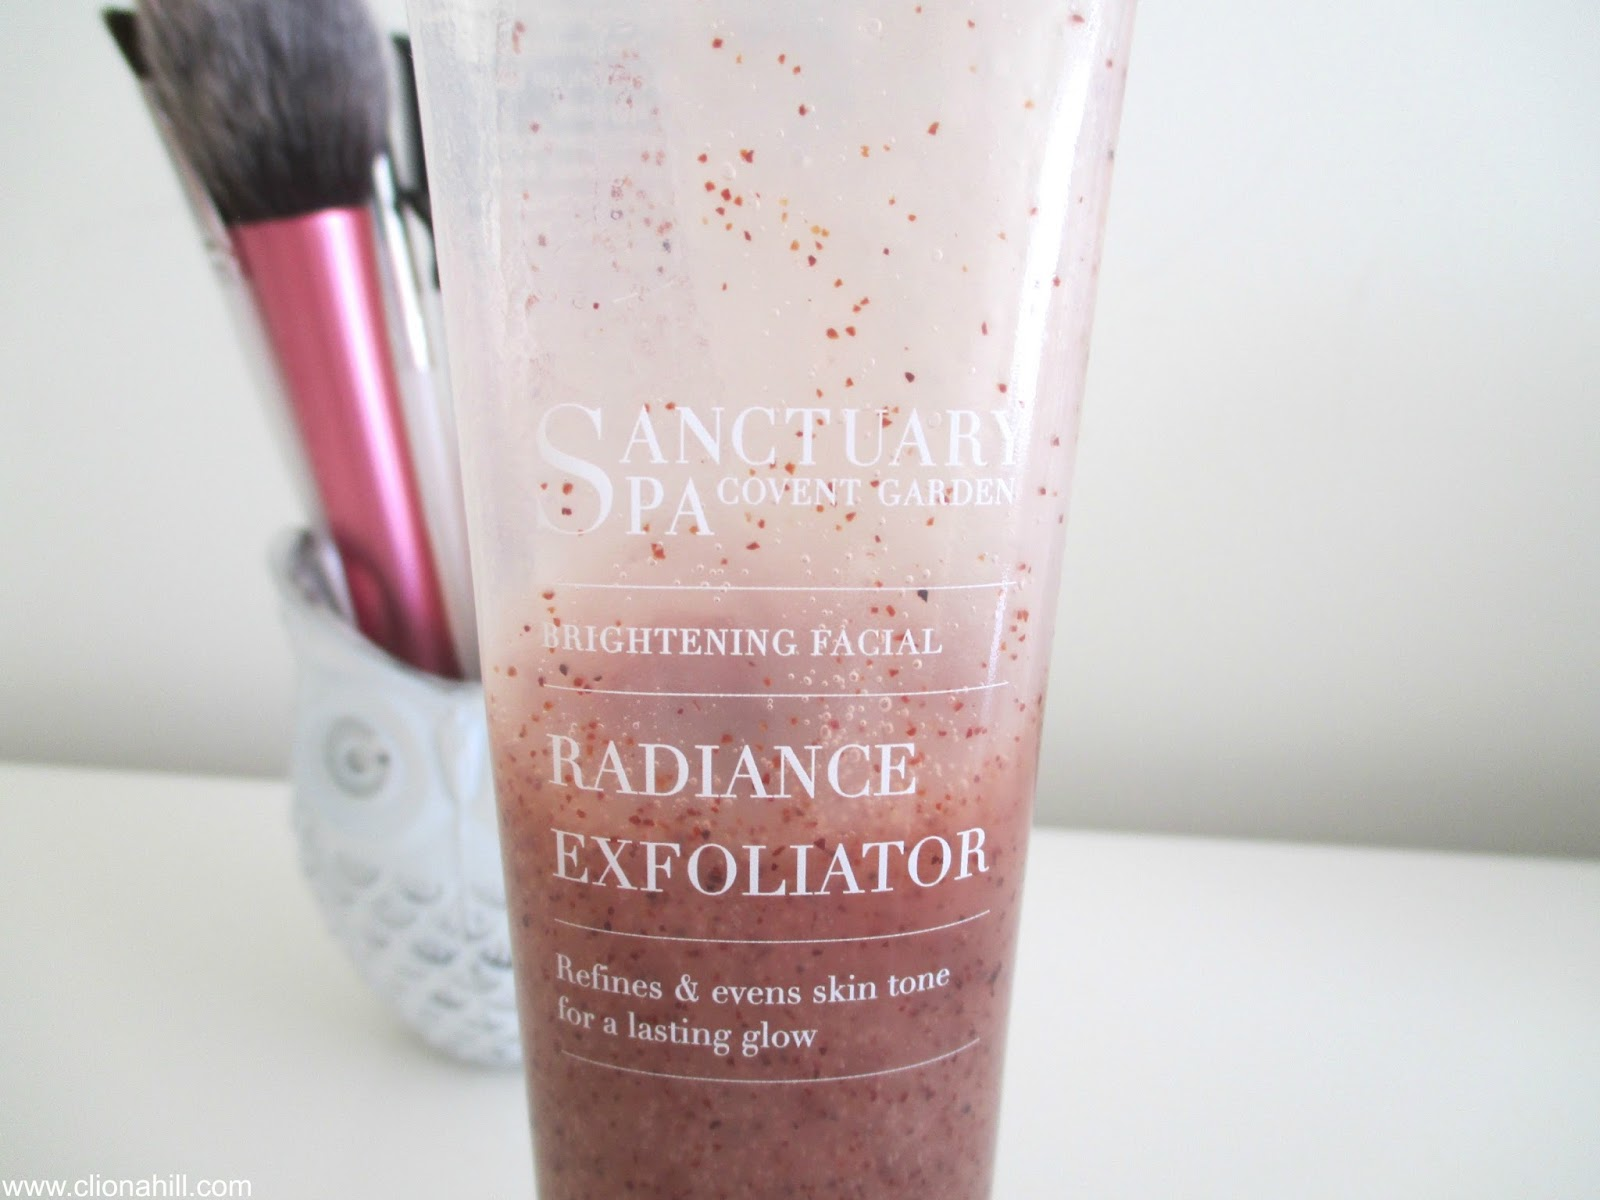 Sanctuary spa radiance facial exfoliator